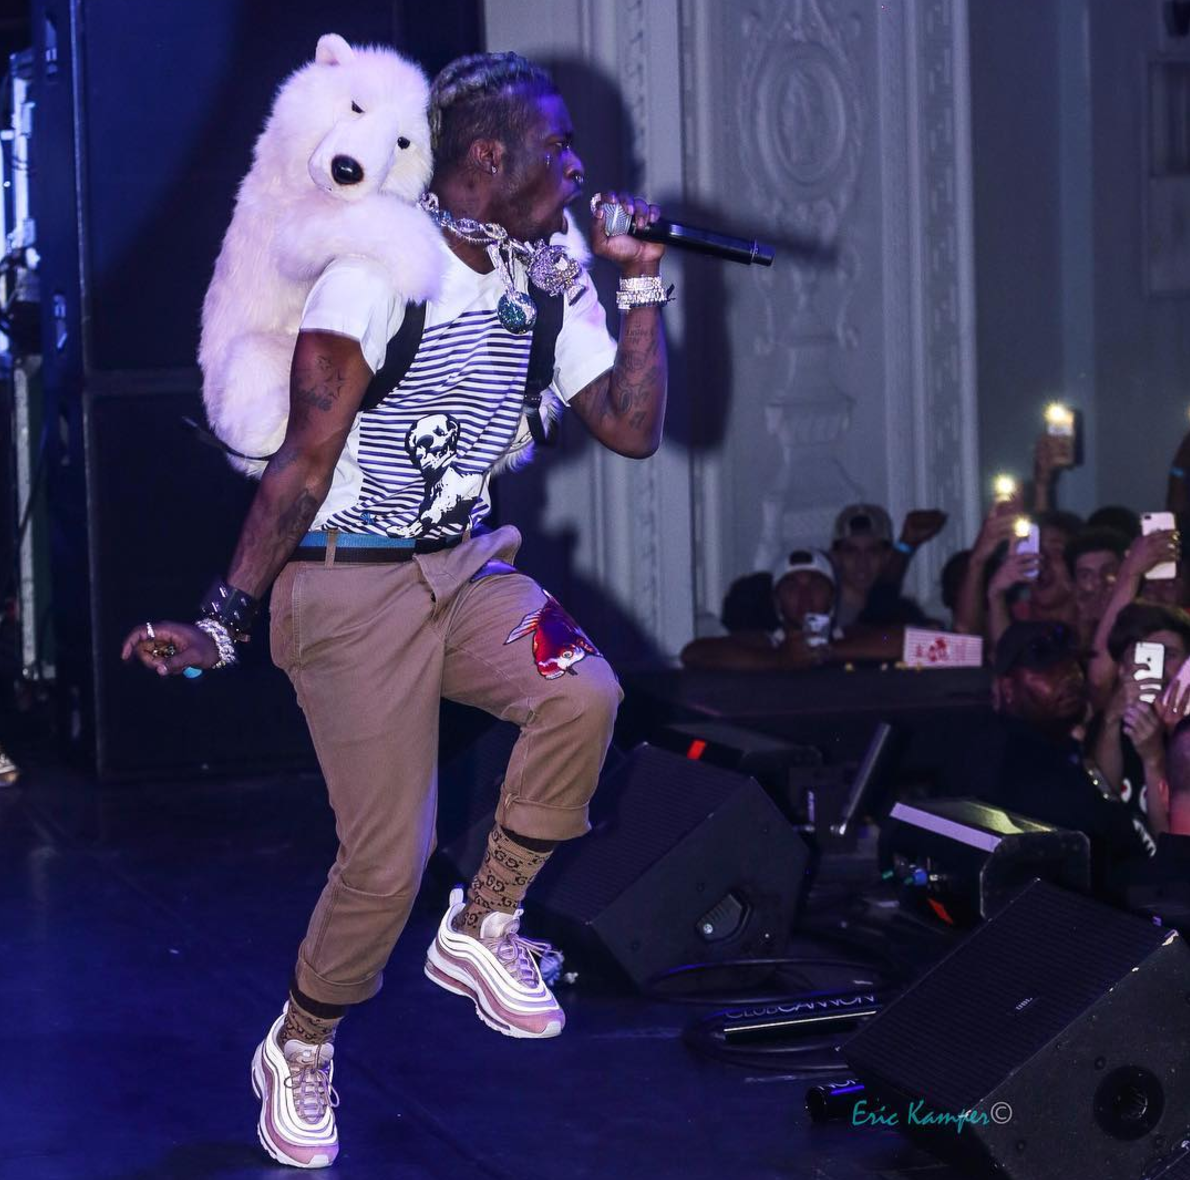 SPOTTED: Lil Uzi Vert In Chrome Hearts Official T-Shirt, Gucci Socks And Nike Air Max 97 Sneakers